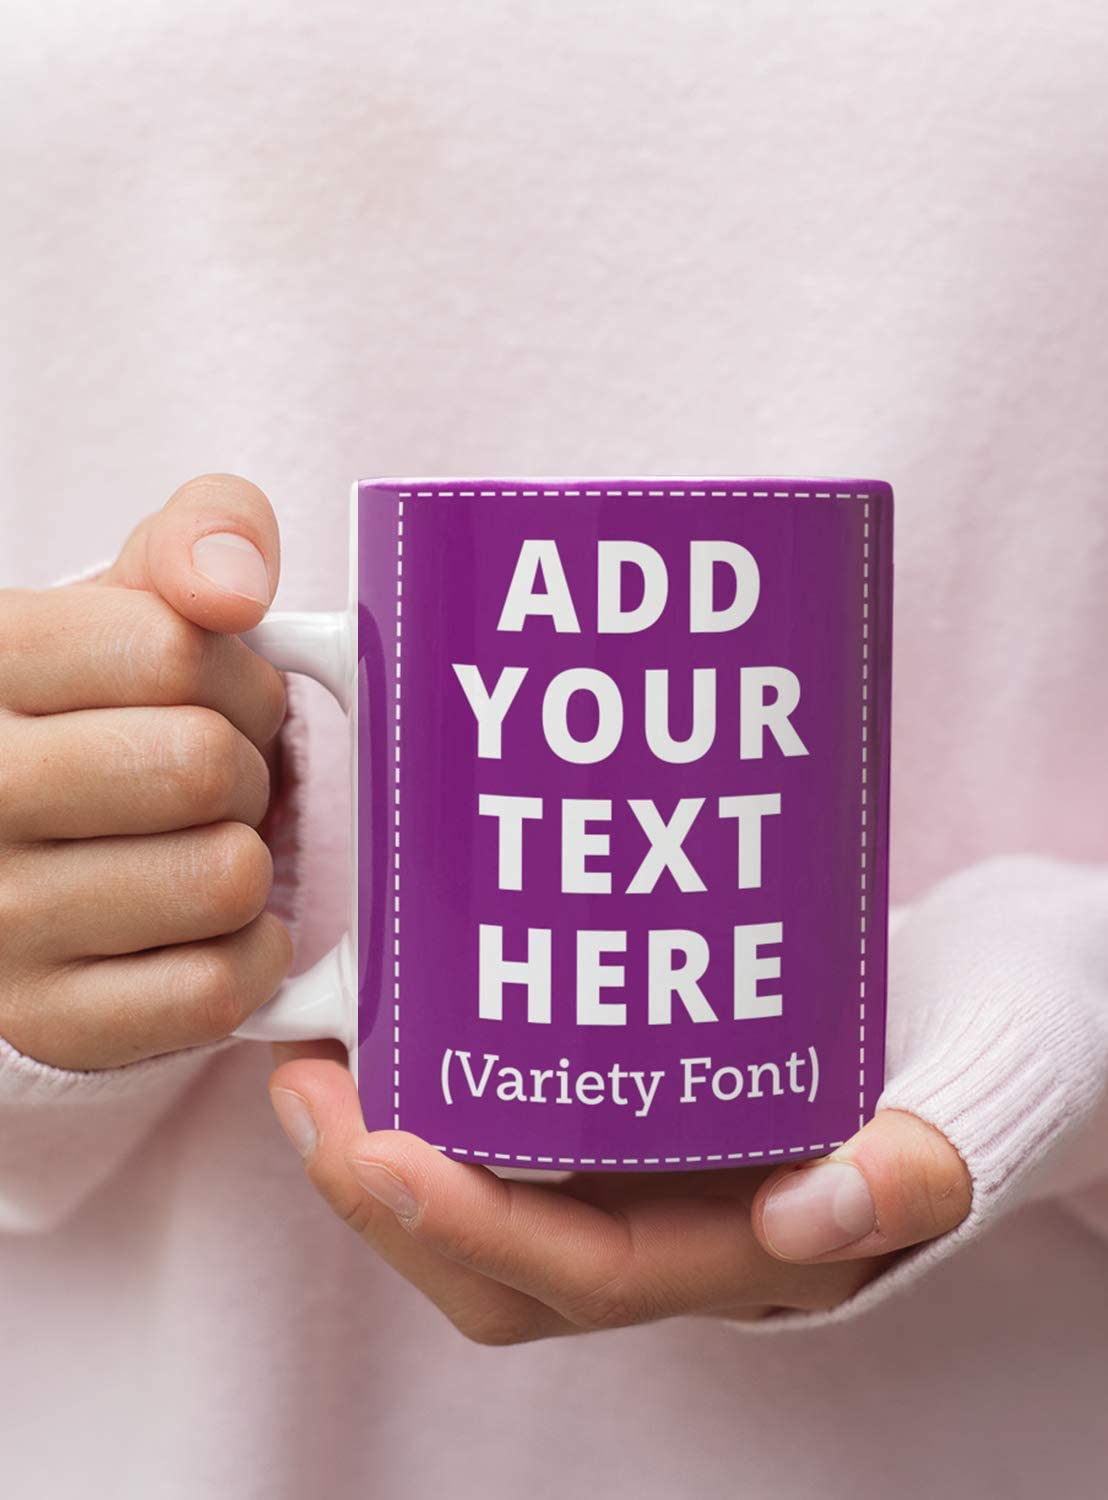 Custom Coffee Mugs, Personalized Add Your Own Text for Special Day, Boyfriend, Girlfriend, Parents, Office, Christmas Gifts Coffee Mugs (Purple, 15 Oz)